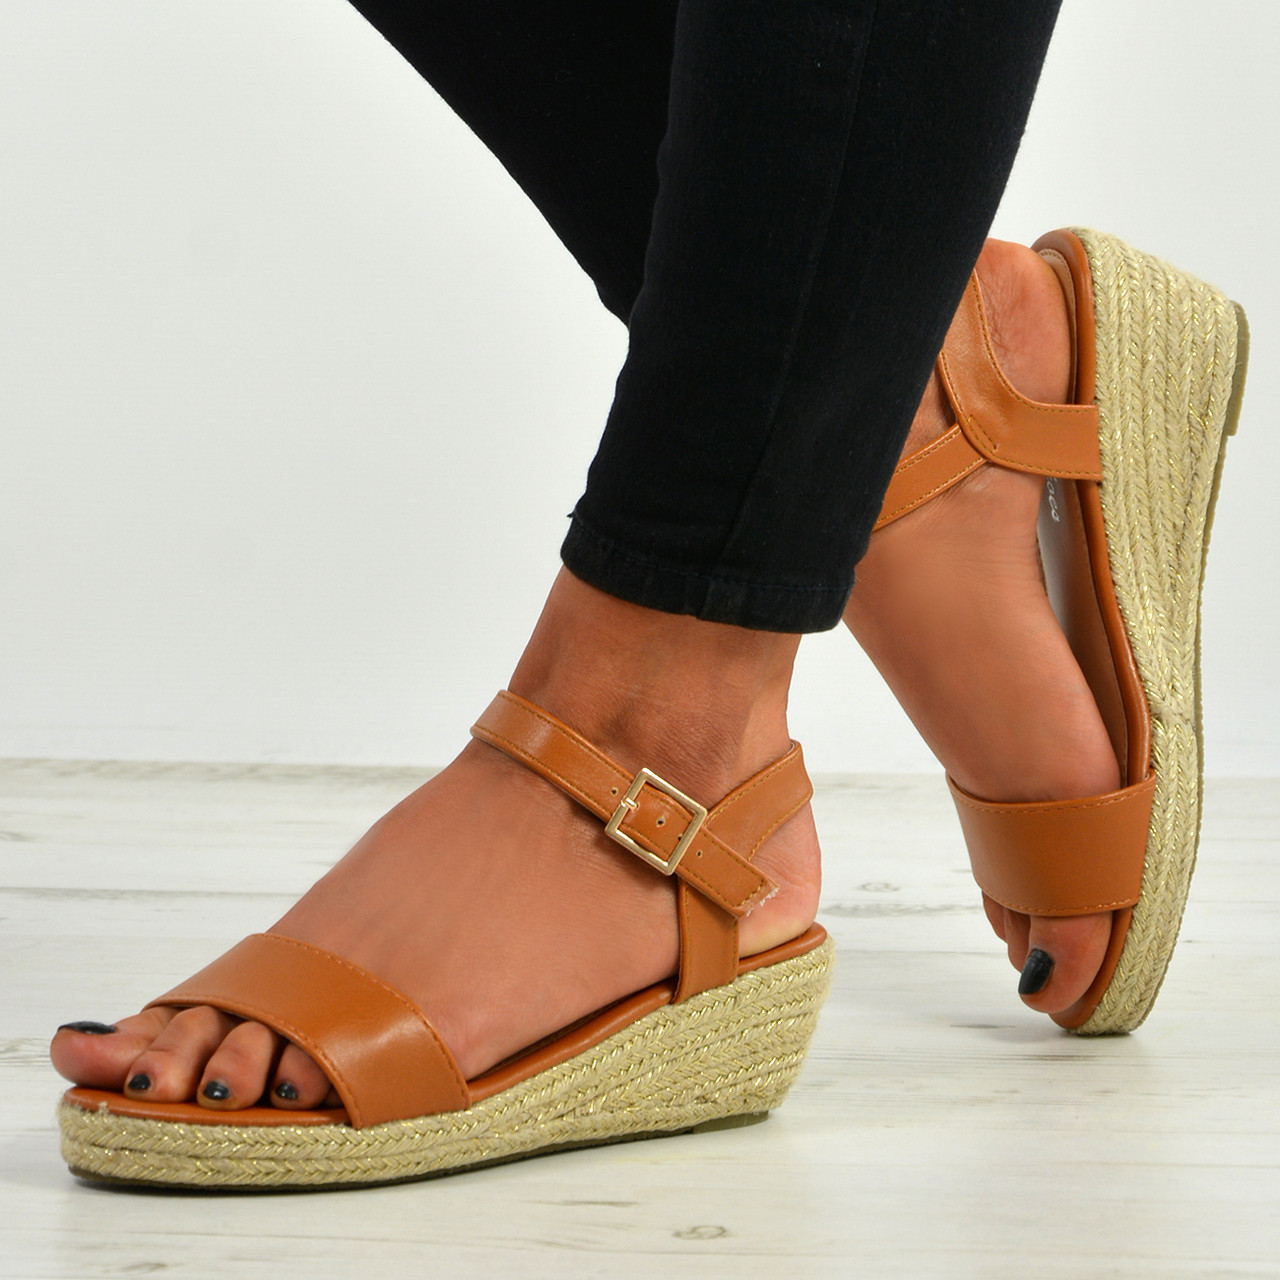 b3268a7927f New Womens Ladies Peep Toe Espadrille Ankle Strap Wedge Sandals Summer Shoes